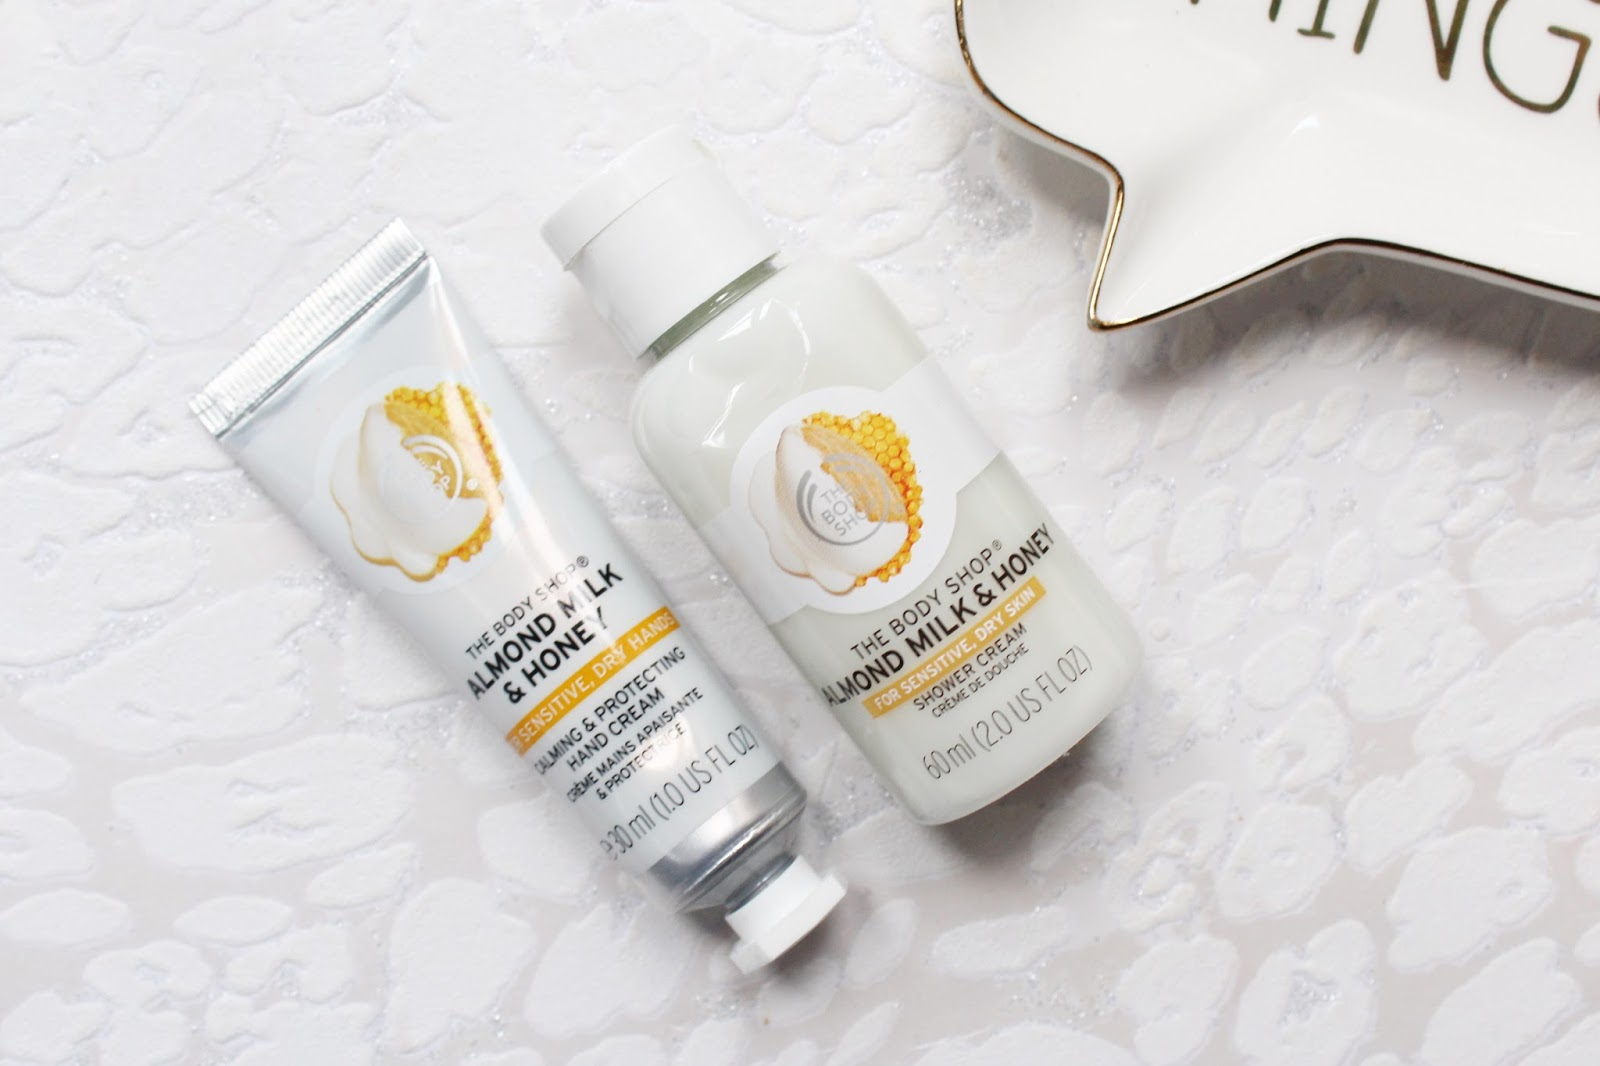 The Body Shop Almond Milk & Honey Favourites